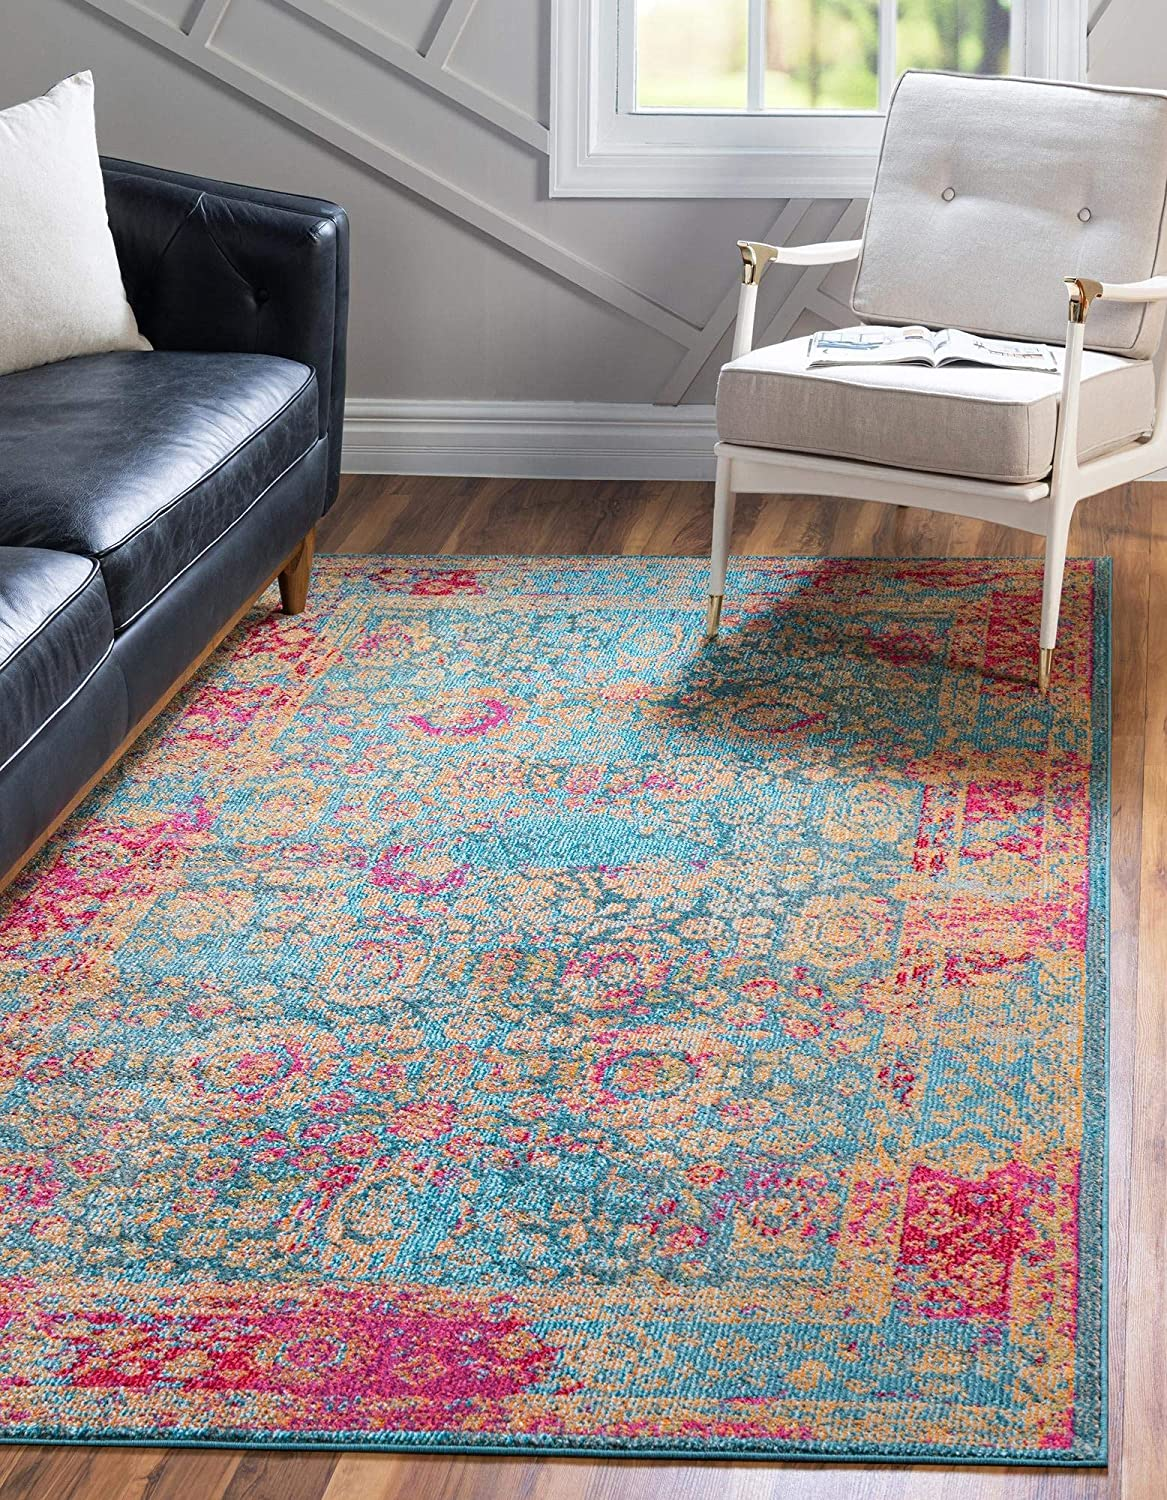 Rugs.com Fleur Louisville-Jefferson County Mall Collection Rug – 4' Medium-Pile x 6' Blue Ru New mail order